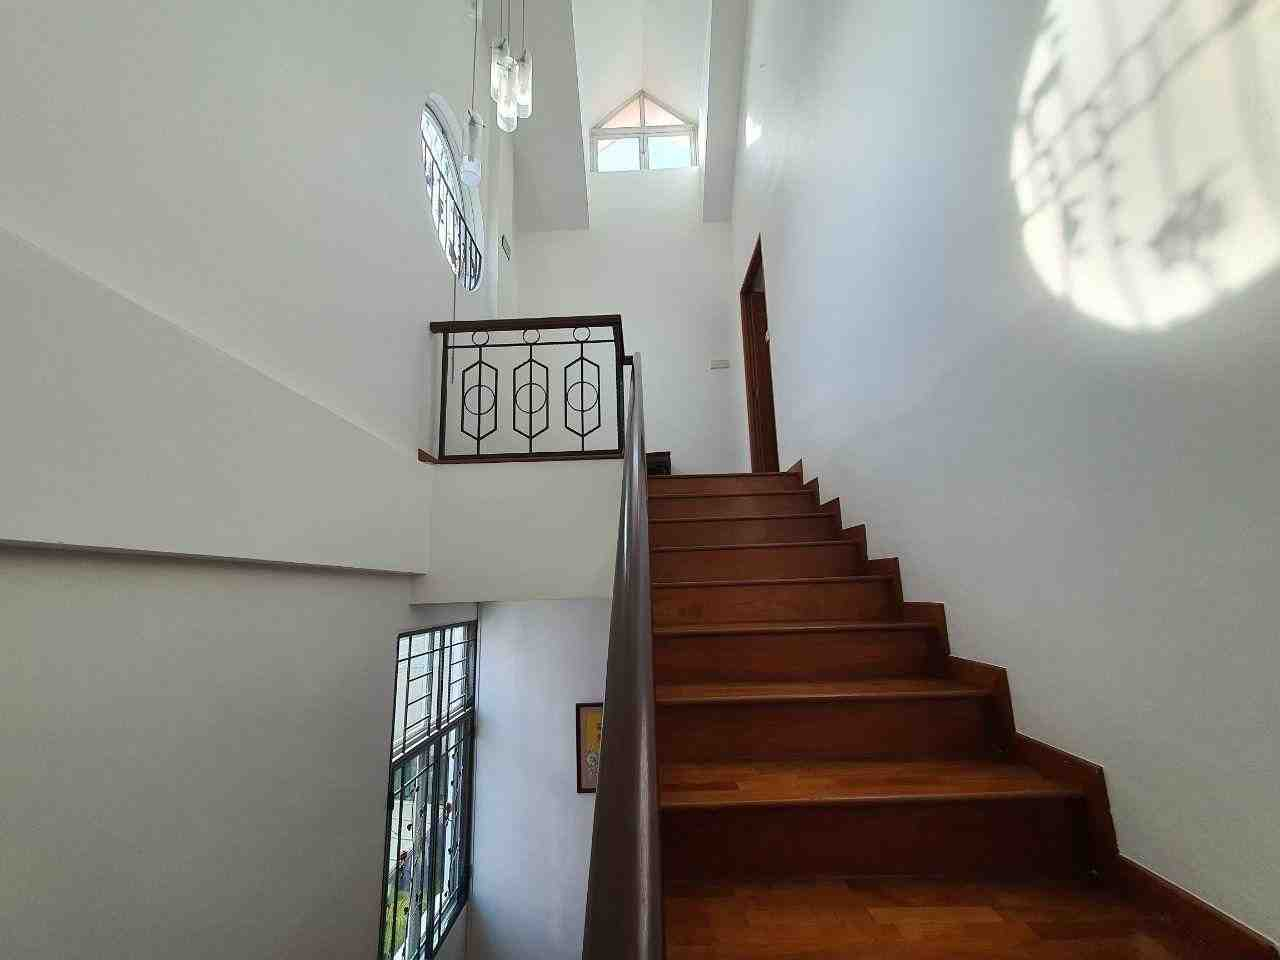 3rd level stairs